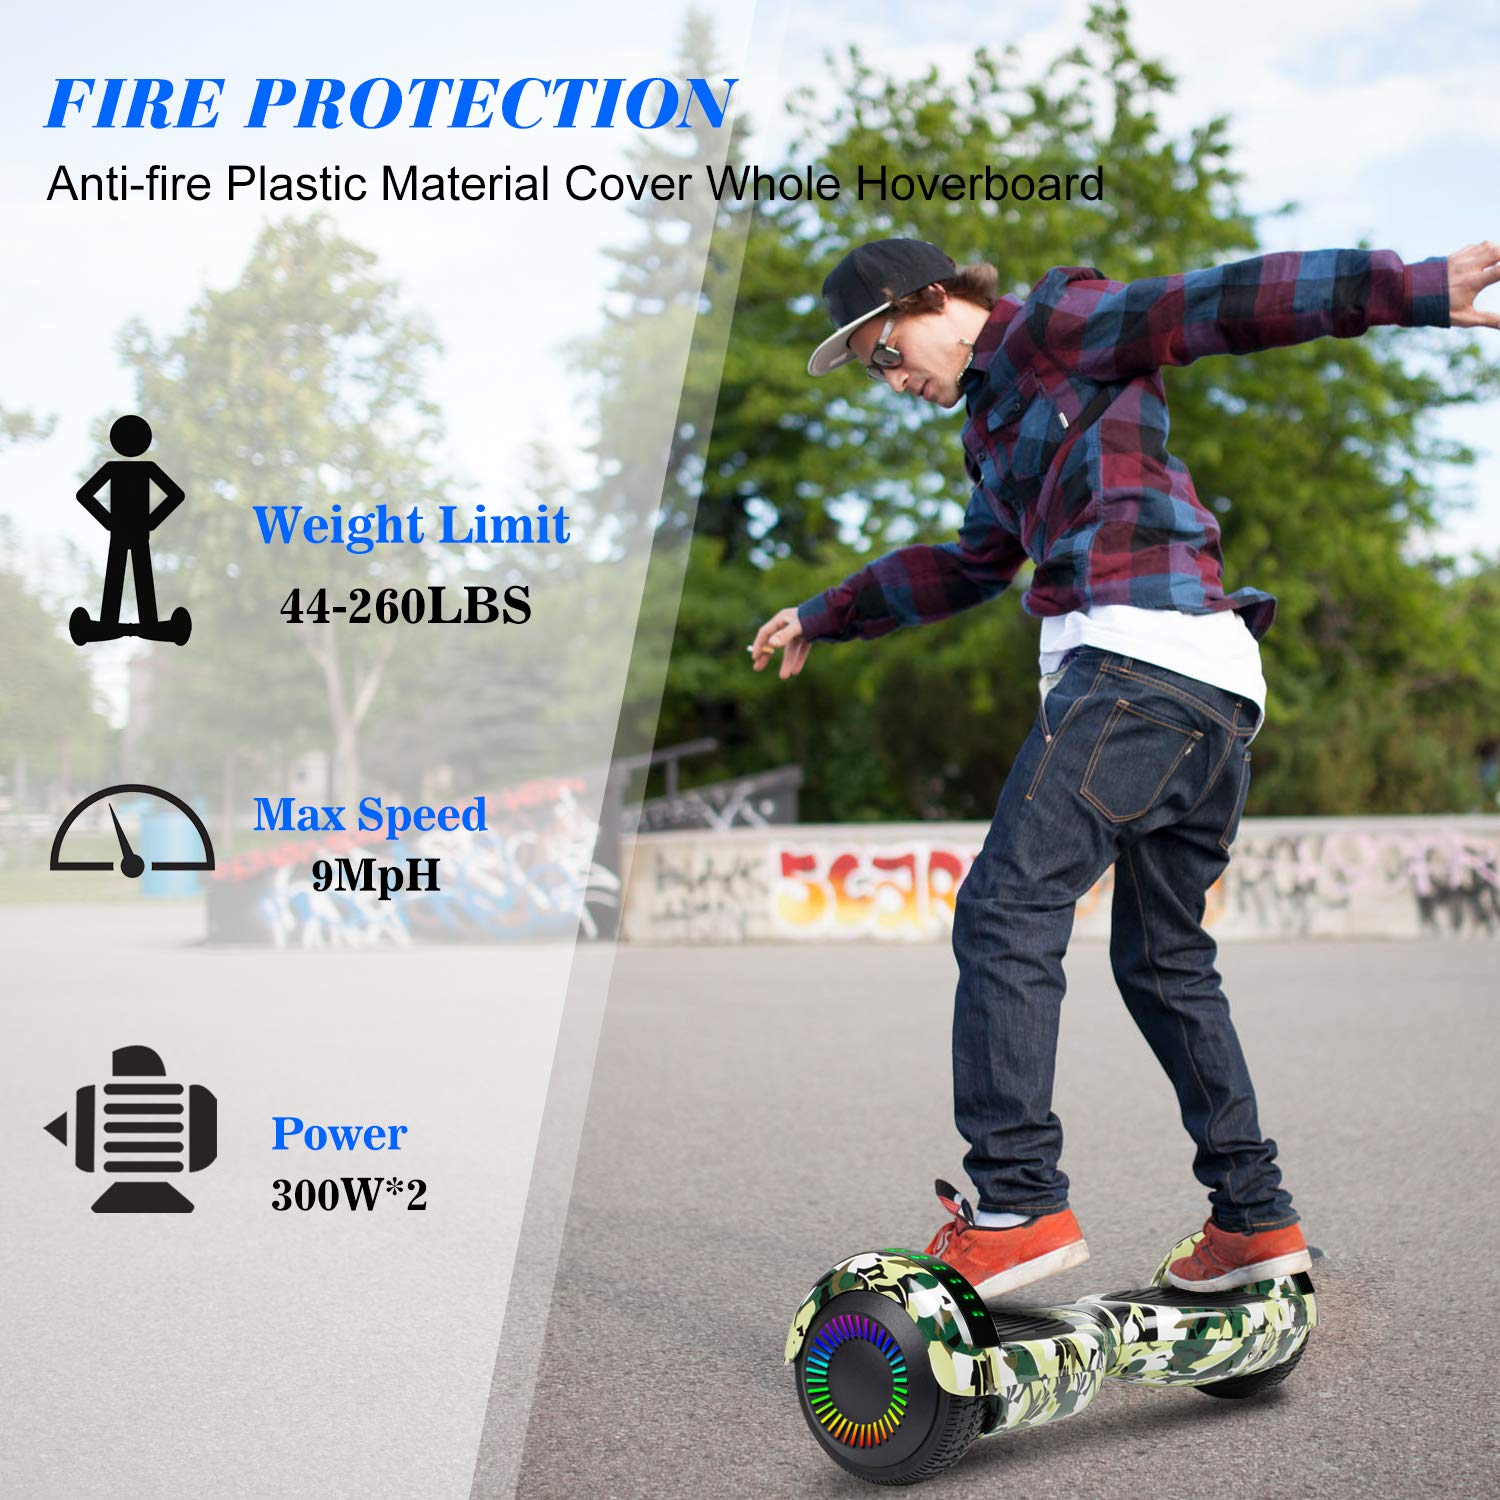 Hoverboard Self Balancing Scooter 6.5'' Two-Wheel Self Balancing Hoverboard with Bluetooth Speaker and LED Lights Electric Scooter for Adult Kids Gift UL 2272 Certified Fun Edition - Woodland Camo by SISIGAD (Image #5)